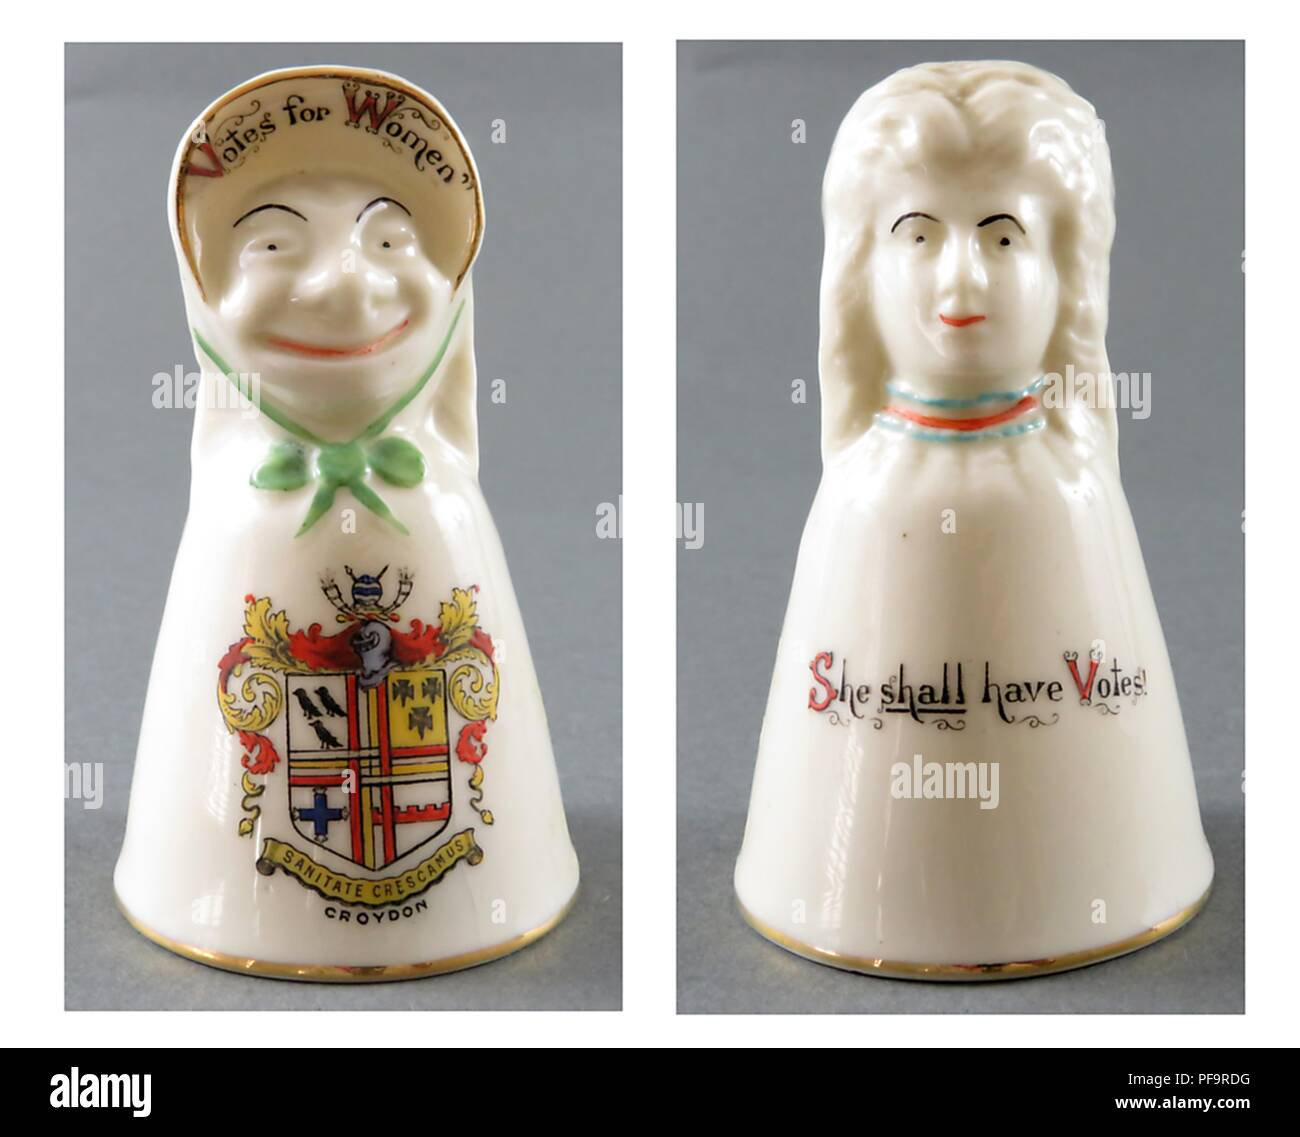 Two-sided china bells, featuring an image of a female suffragist as both harridan and lovely woman, sold as souvenirs in vacation spots in England, United Kingdom, with merchants from each area adding the crest of their town (such as Croyden's here) to the piece, 1920. () - Stock Image